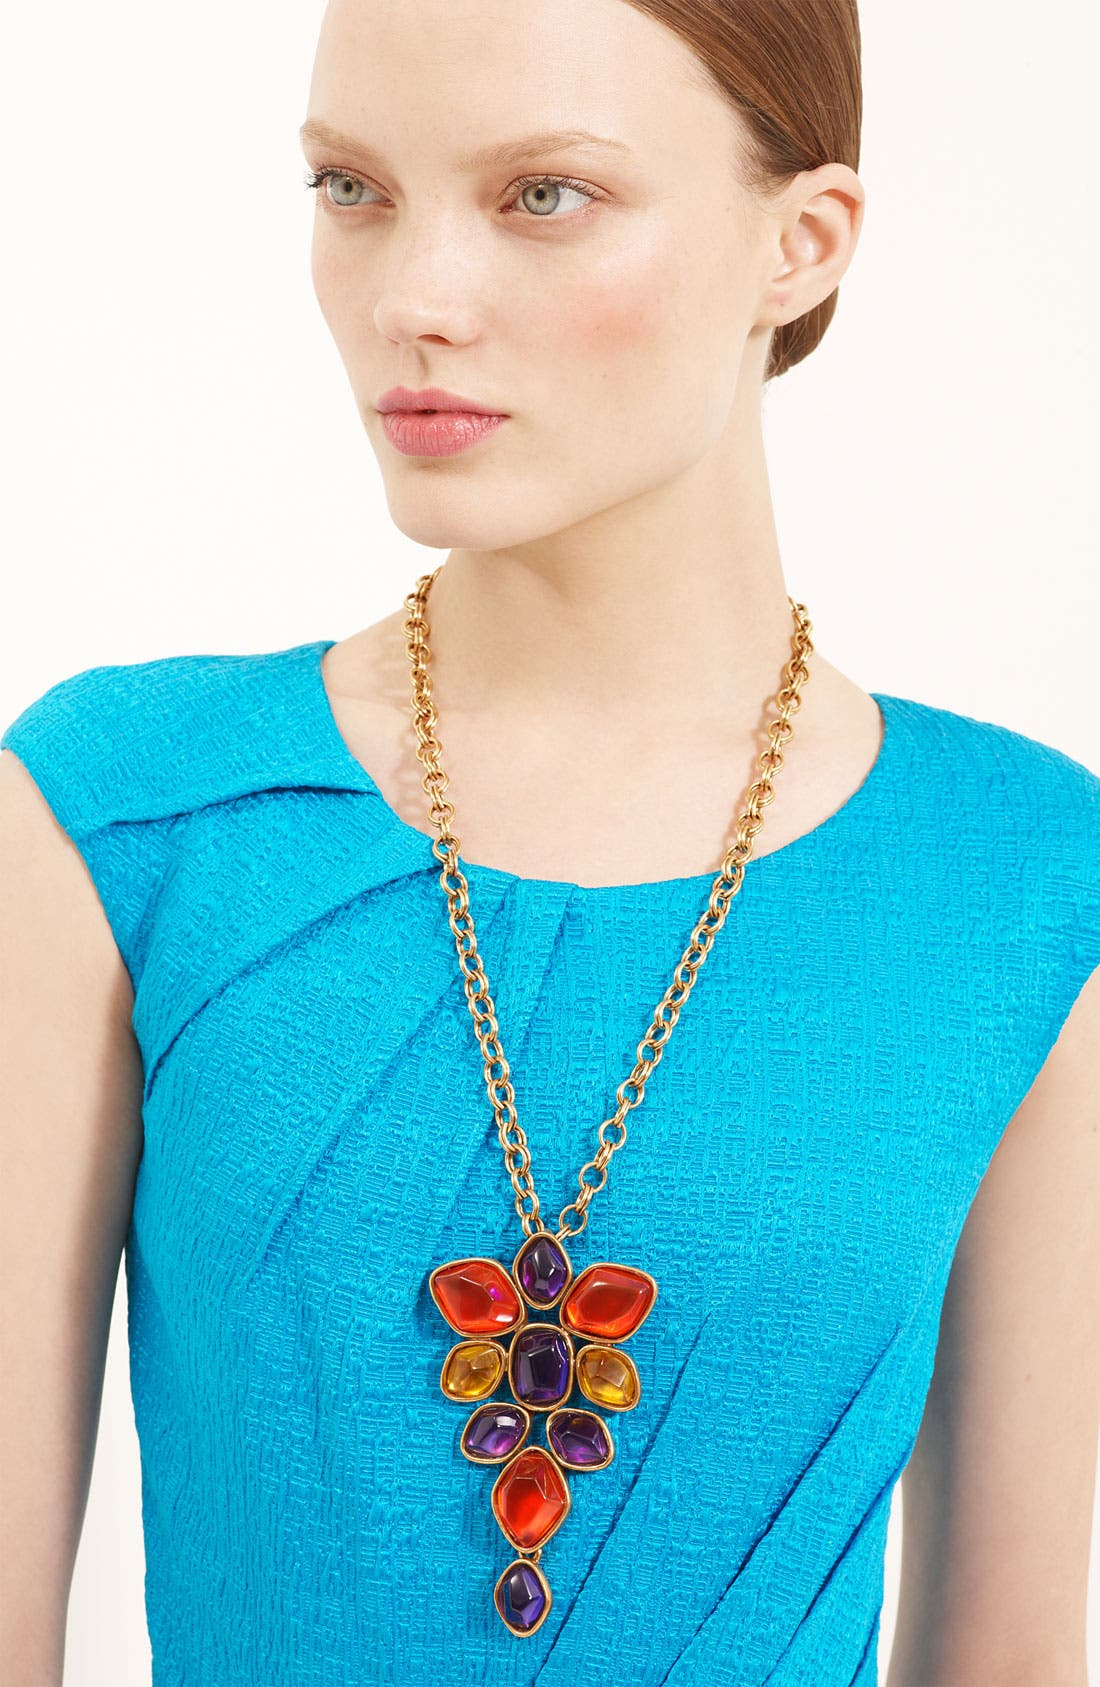 Alternate Image 1 Selected - Oscar de la Renta Large Faceted Cluster Brooch Necklace